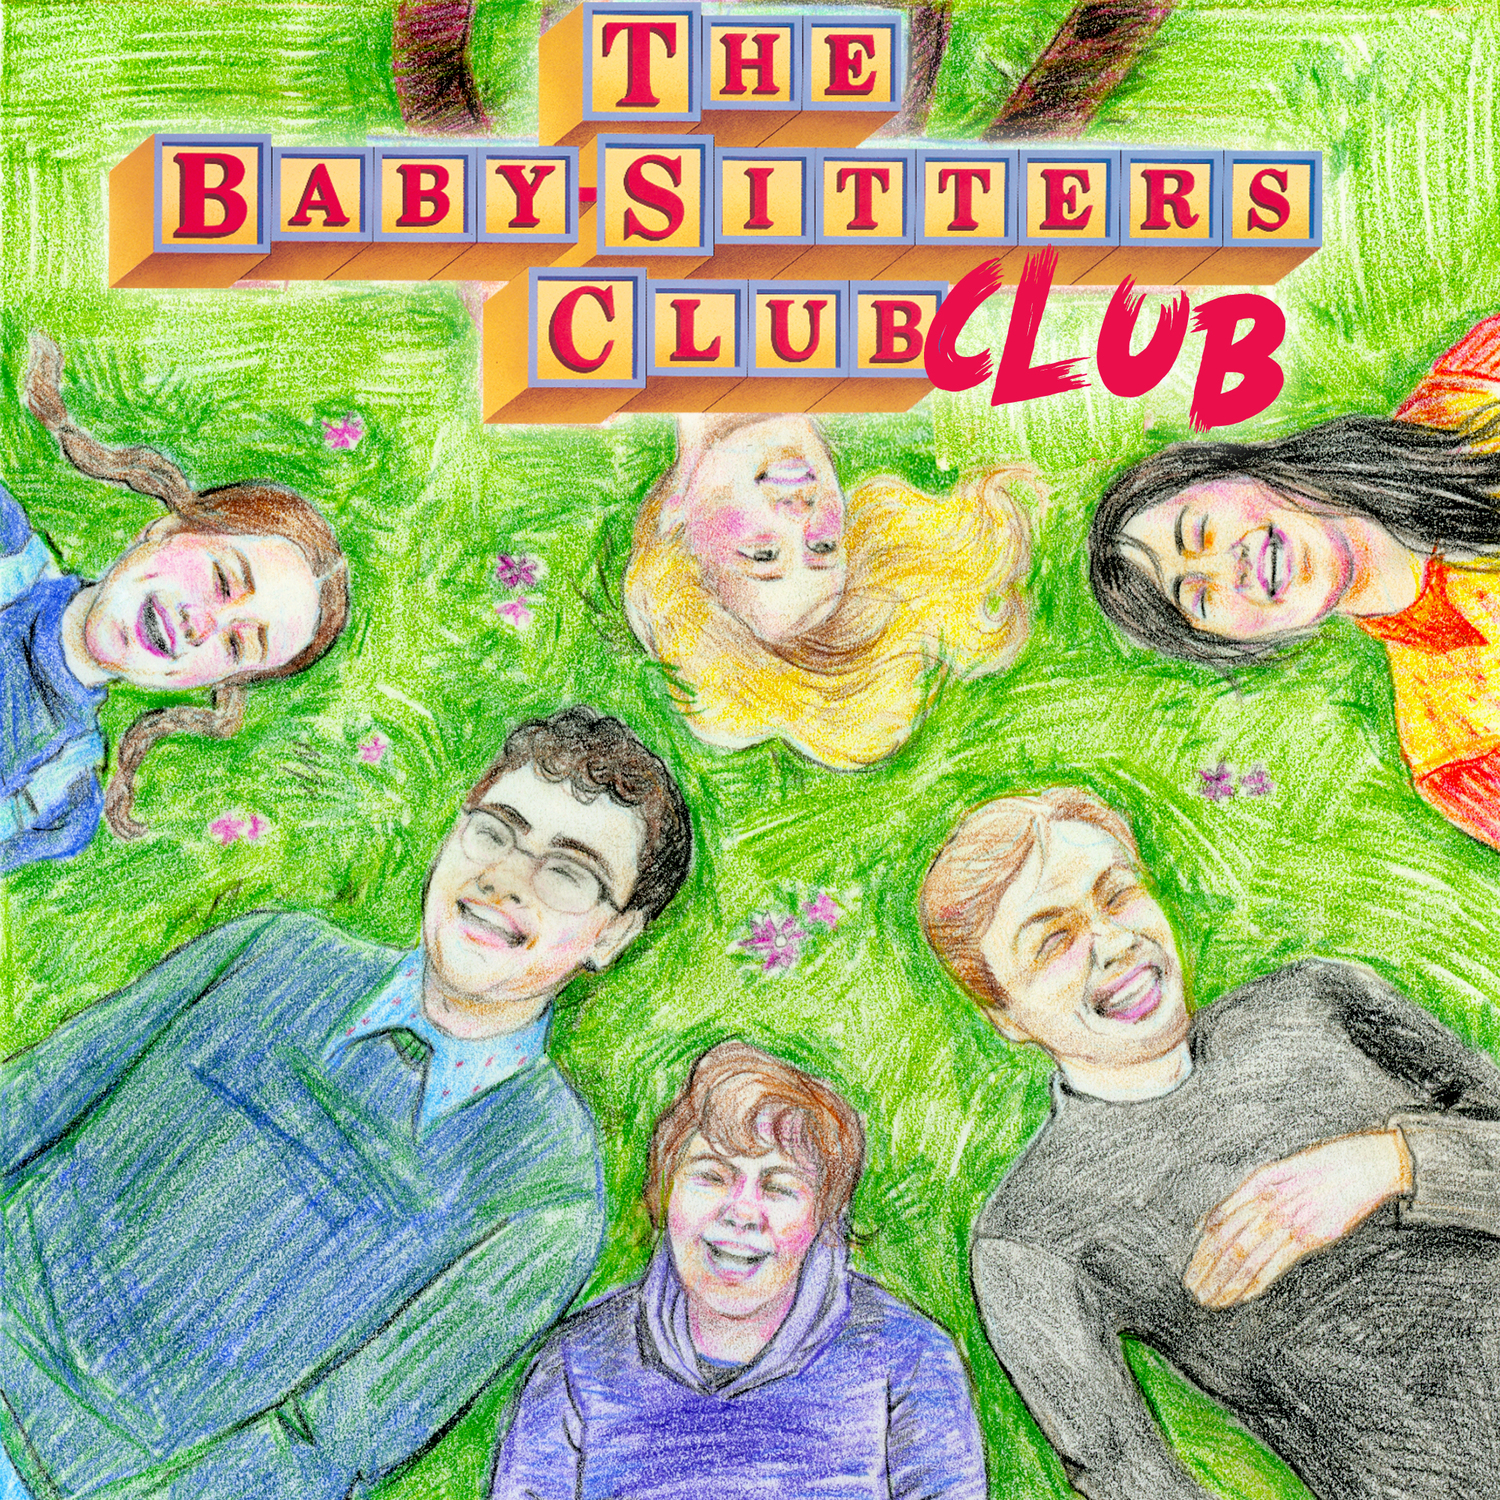 The Baby-Sitters Club Club logo of children lying in grass